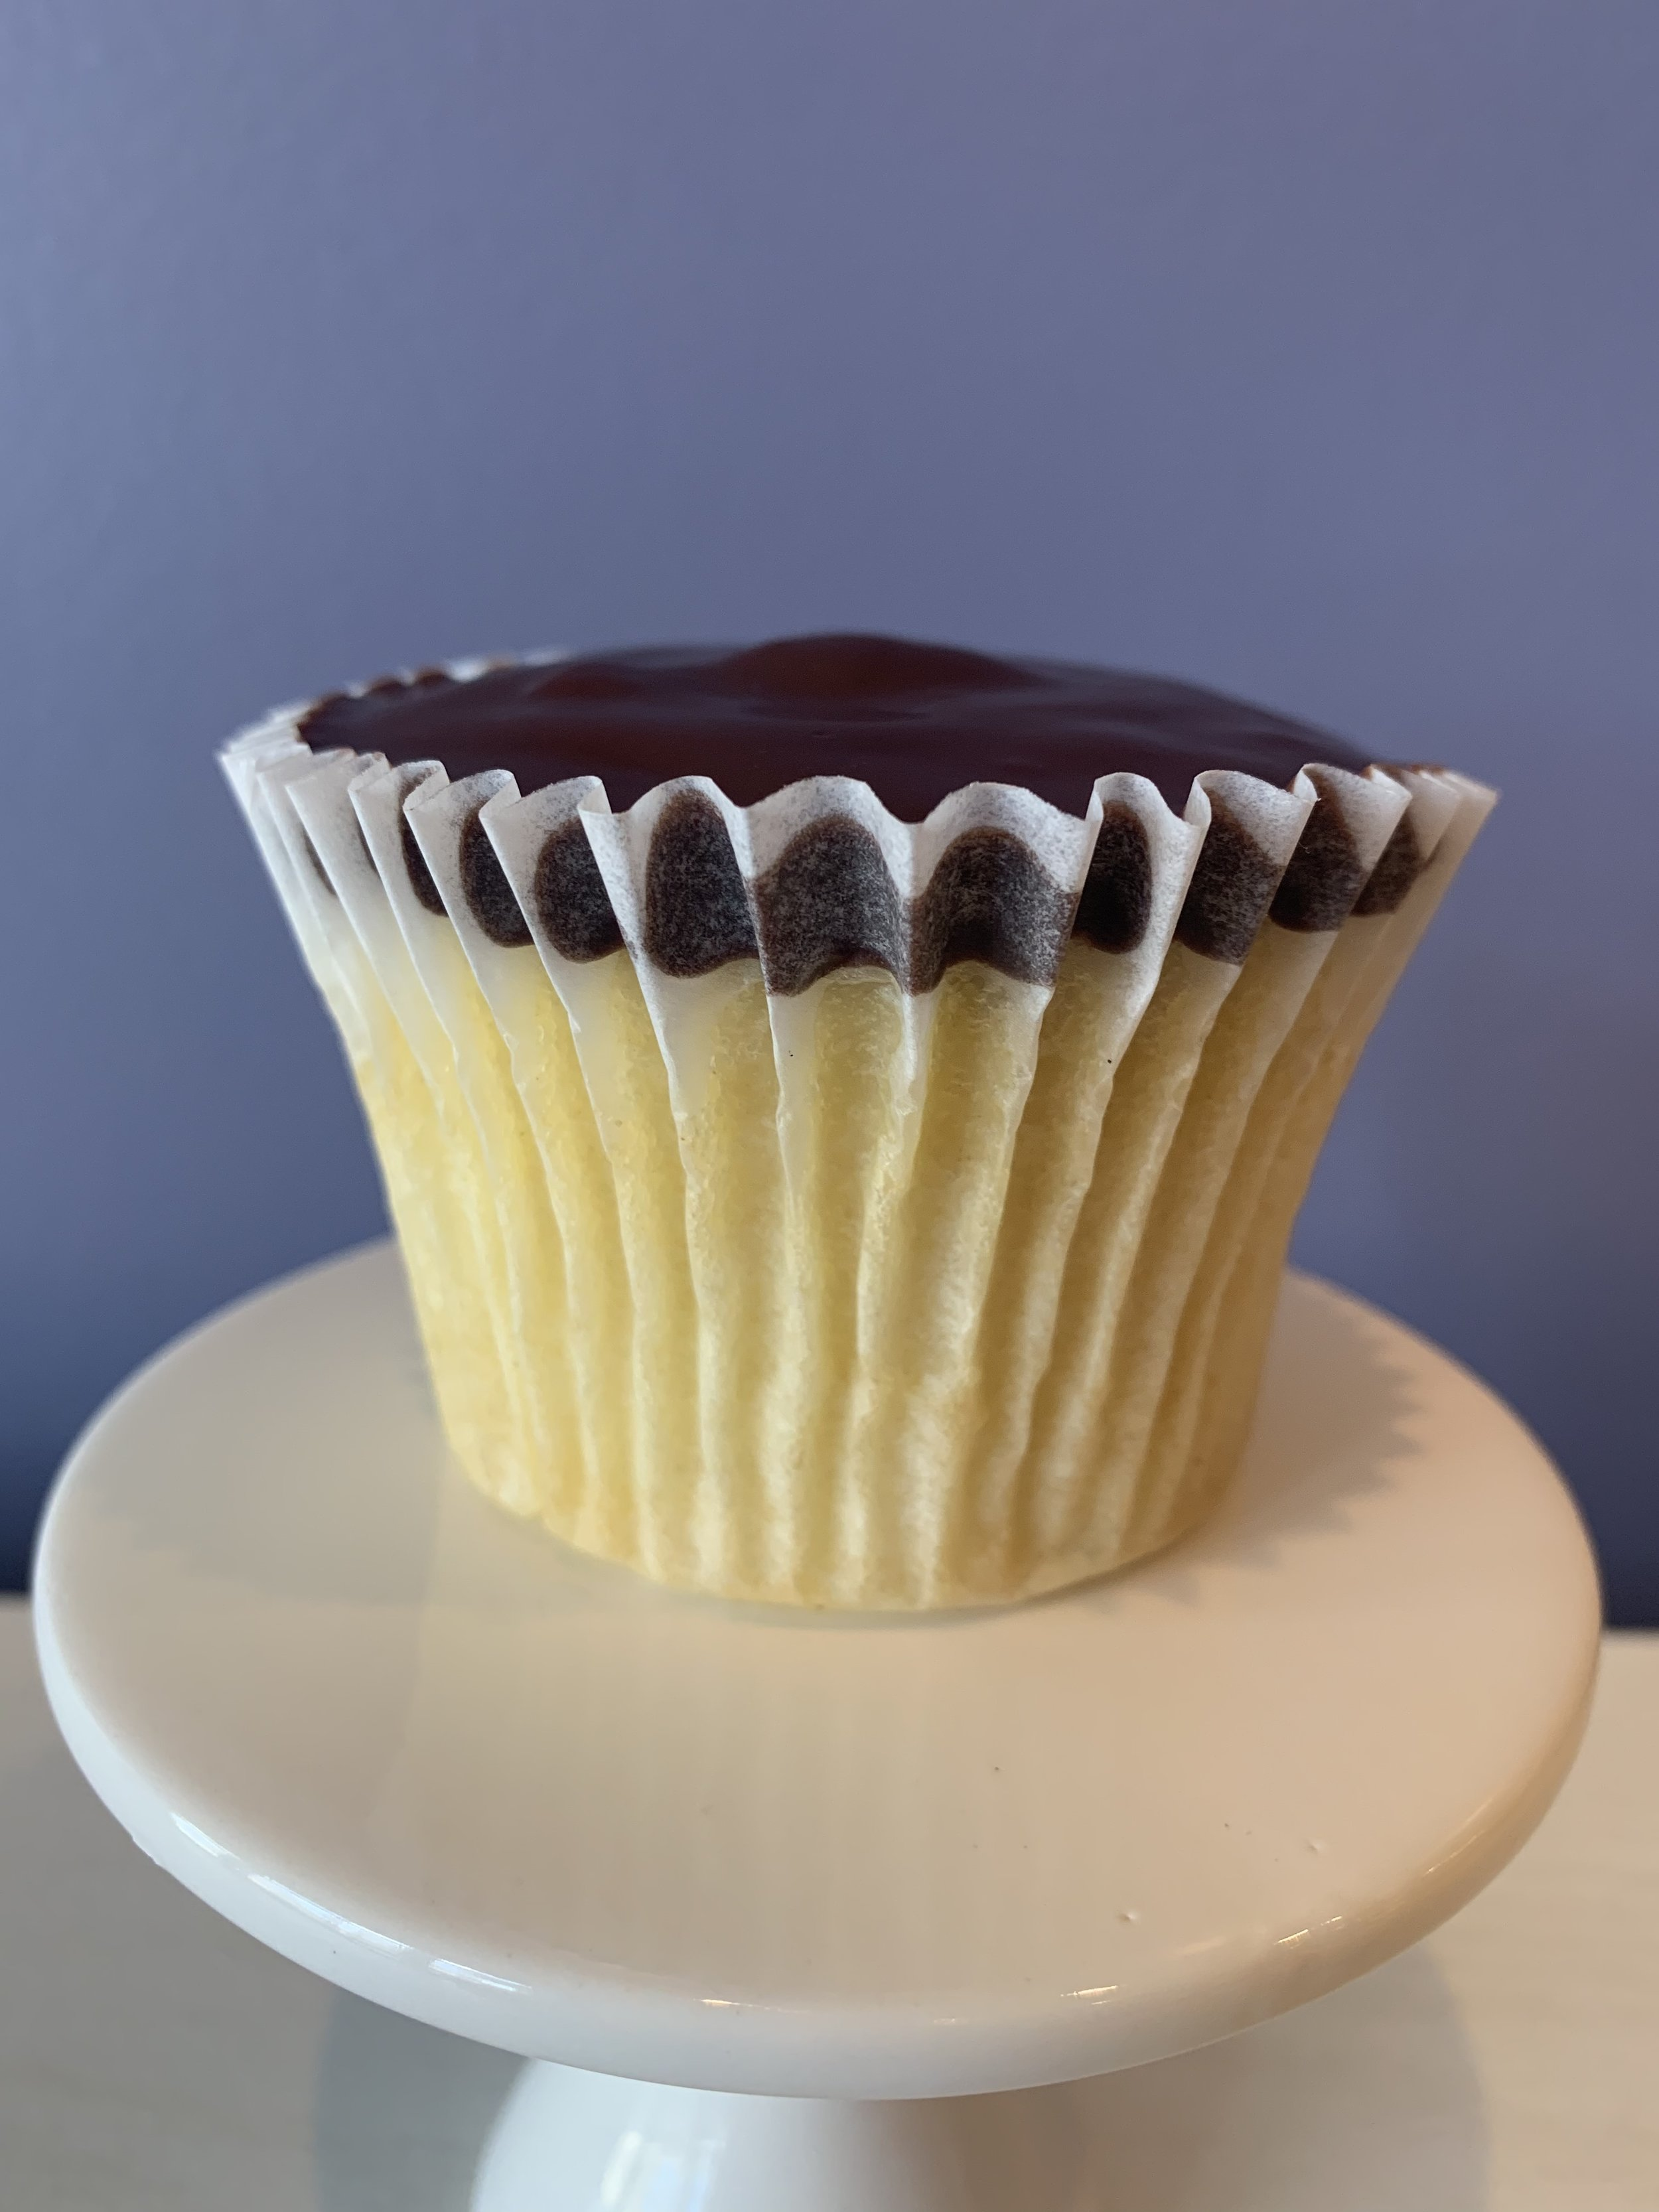 Boston Cream - Yellow Cake filled with pastry cream topped with chocolate ganache.Vegan and Gluten Free available